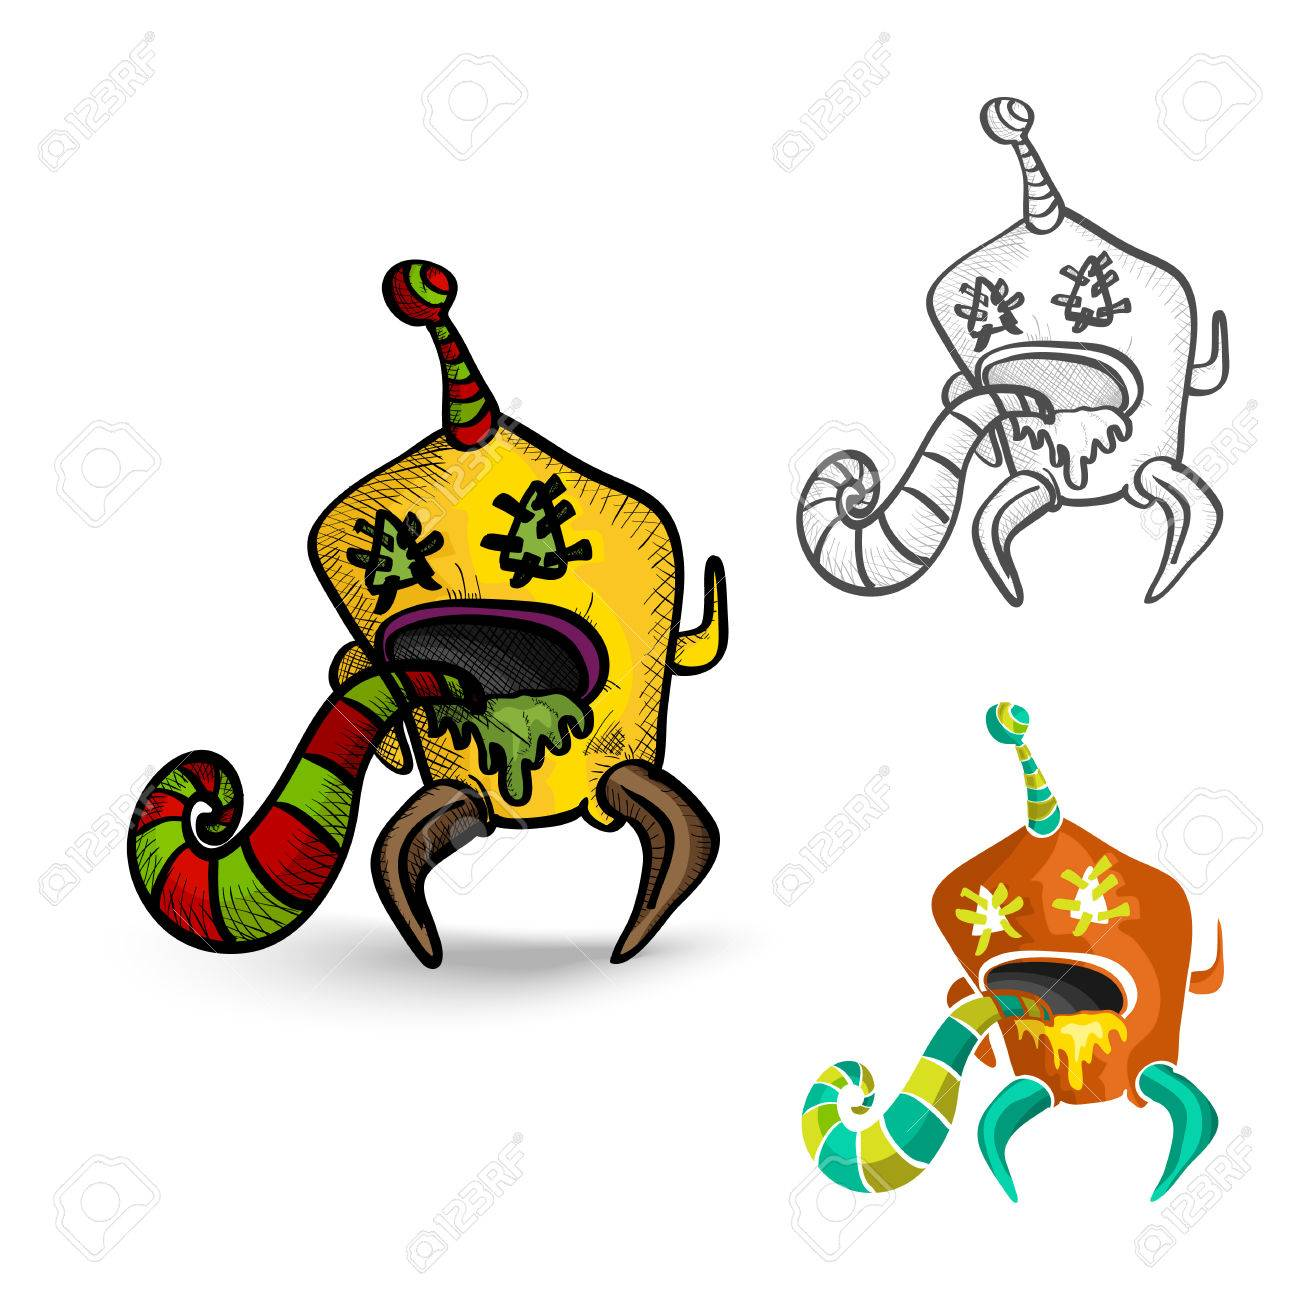 Halloween Monsters spooky hand drawn isolated freak creatures set. EPS10 vector file organized in layers for easy editing. Stock Vector - 22797074